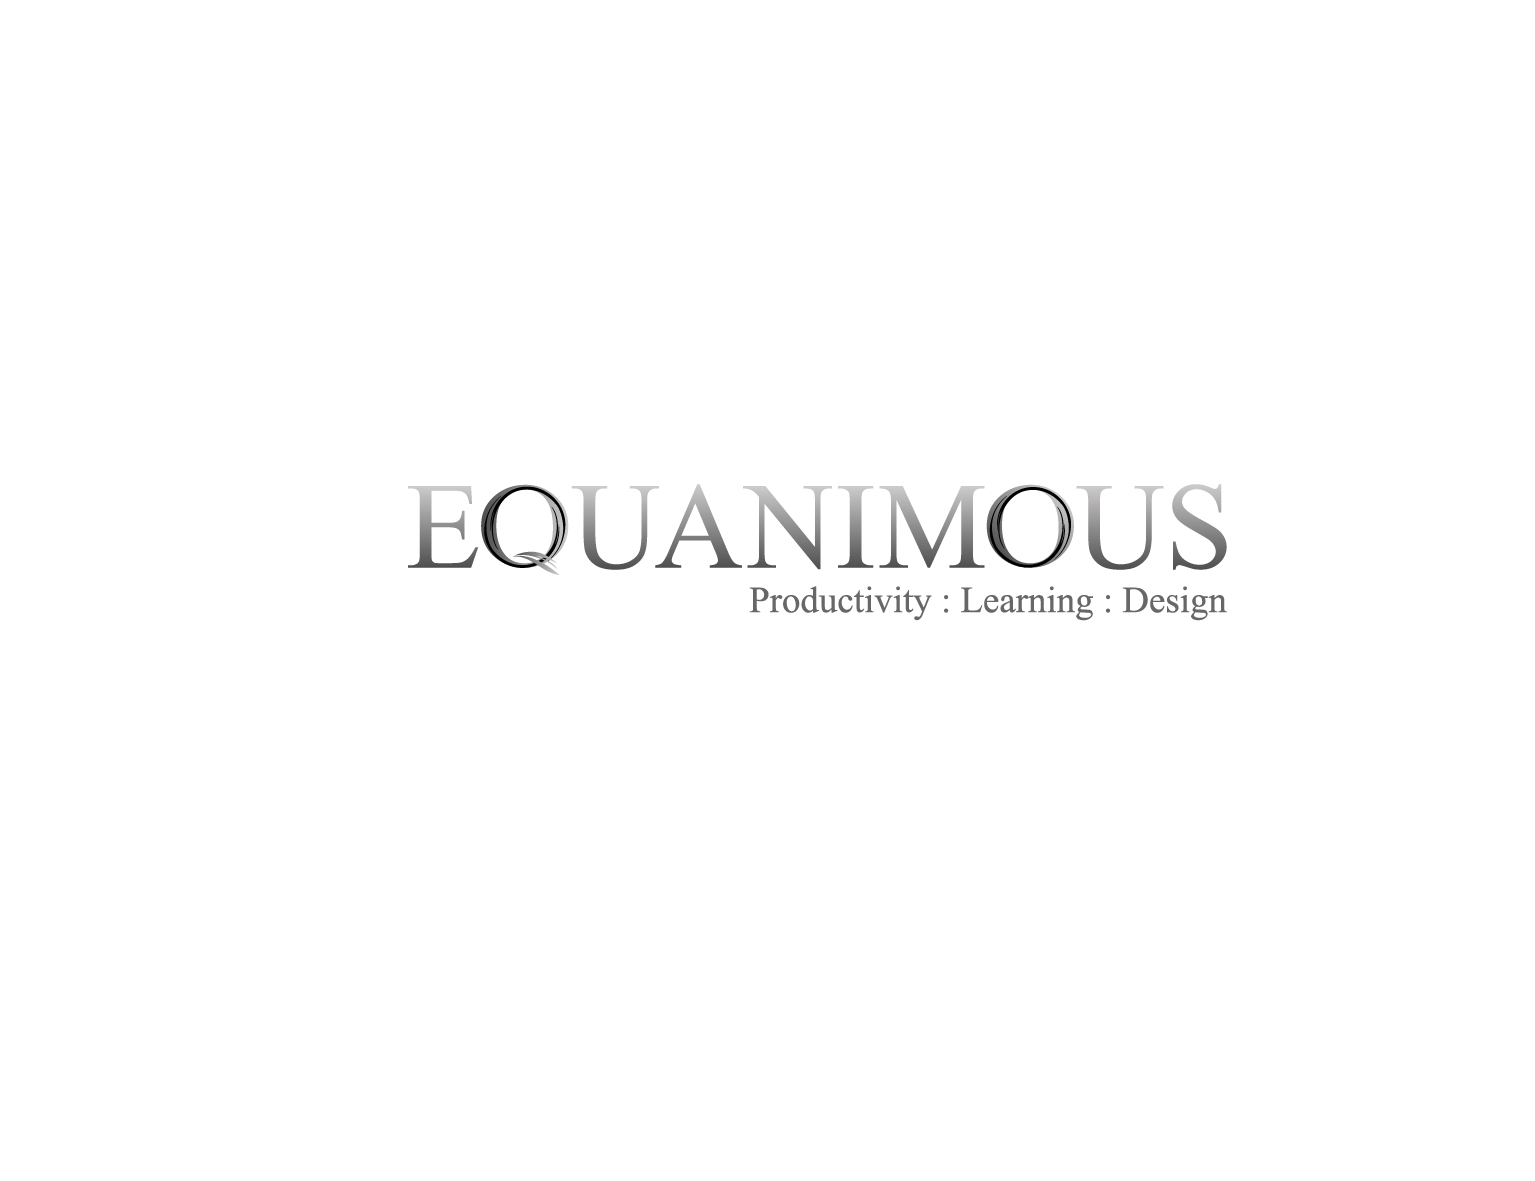 Logo Design by 3draw - Entry No. 420 in the Logo Design Contest Logo Design : EQUANIMOUS : Productivity | Learning | Design.